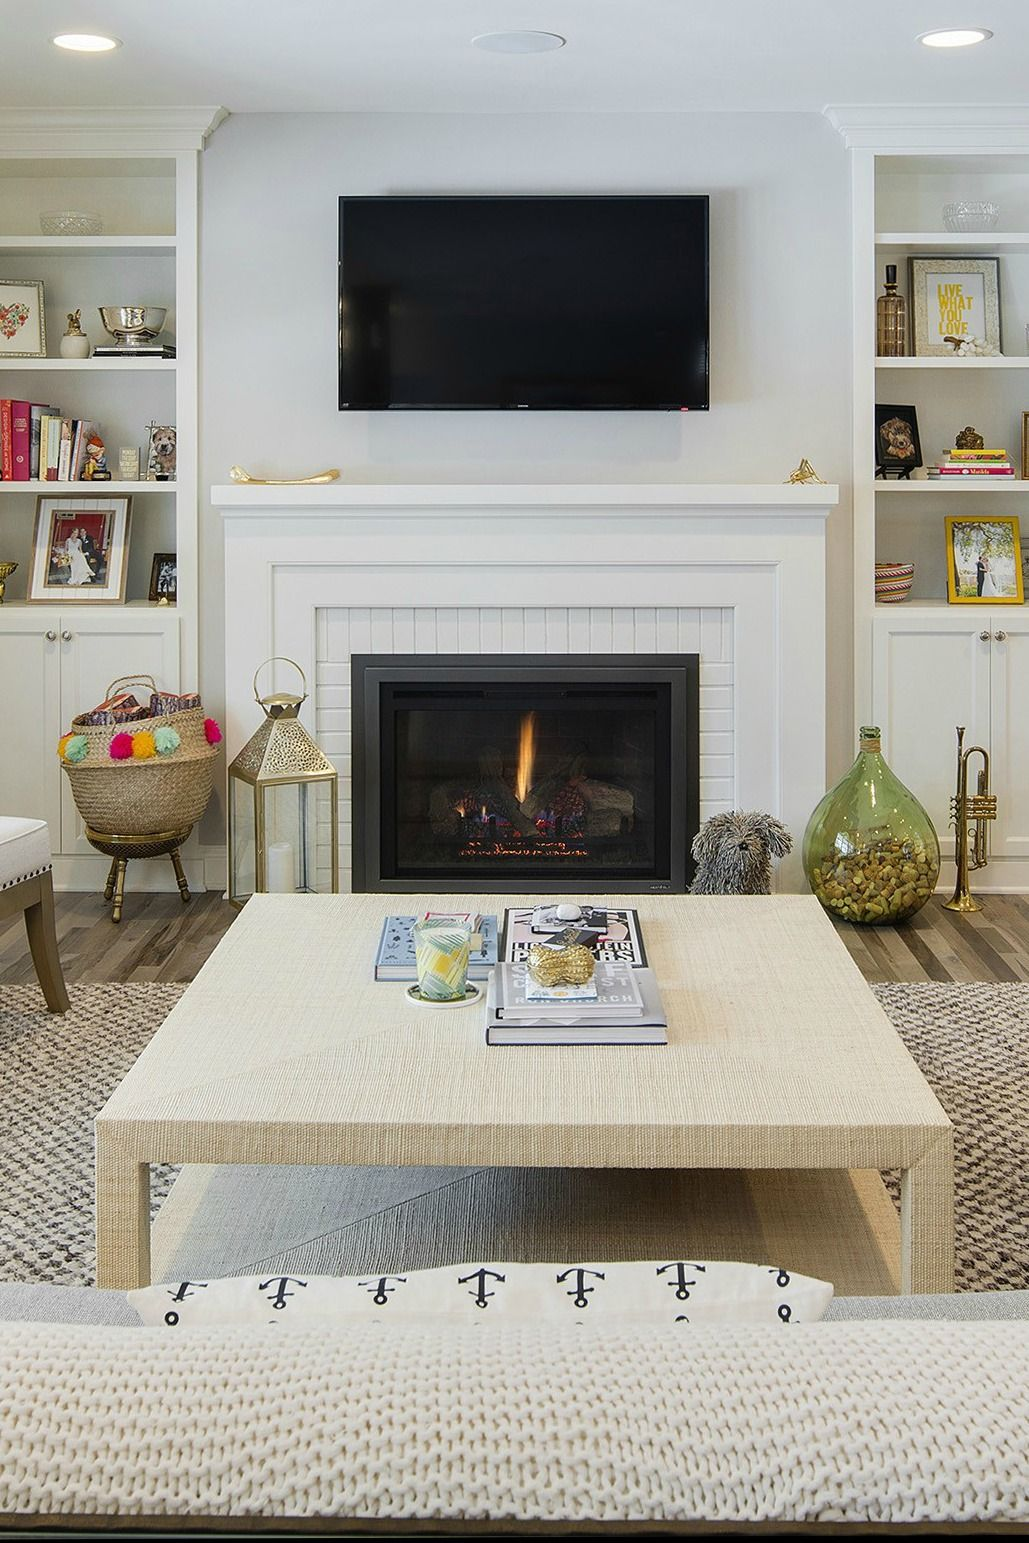 27+ Stunning Fireplace Tile Ideas for your Home | Pinterest ...